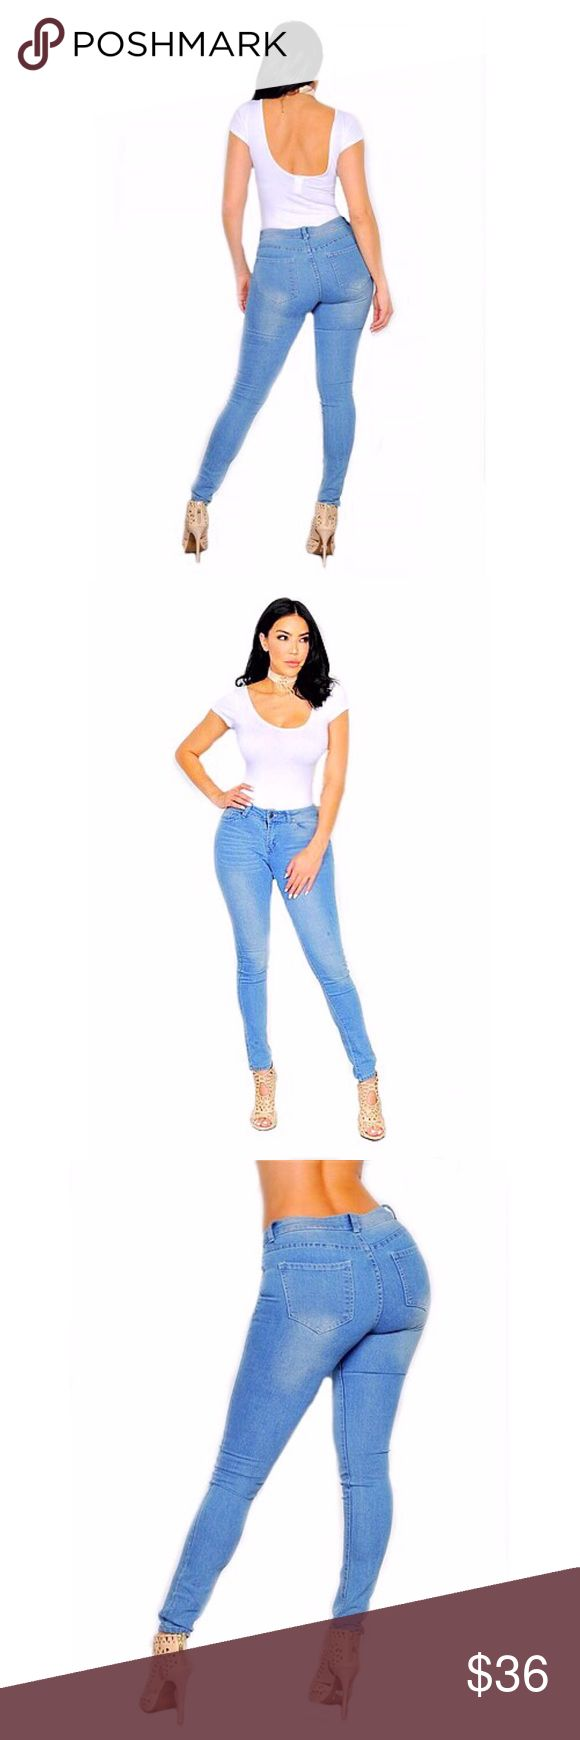 """Light Blue Skinny Jeans Light Blue Skinny Jean Made in USA 77% Cotton 21% Polyester 2% Spandex Sizes 1, 3, 7, 9, 11, 13 Inseam 30"""" Jeans Skinny"""